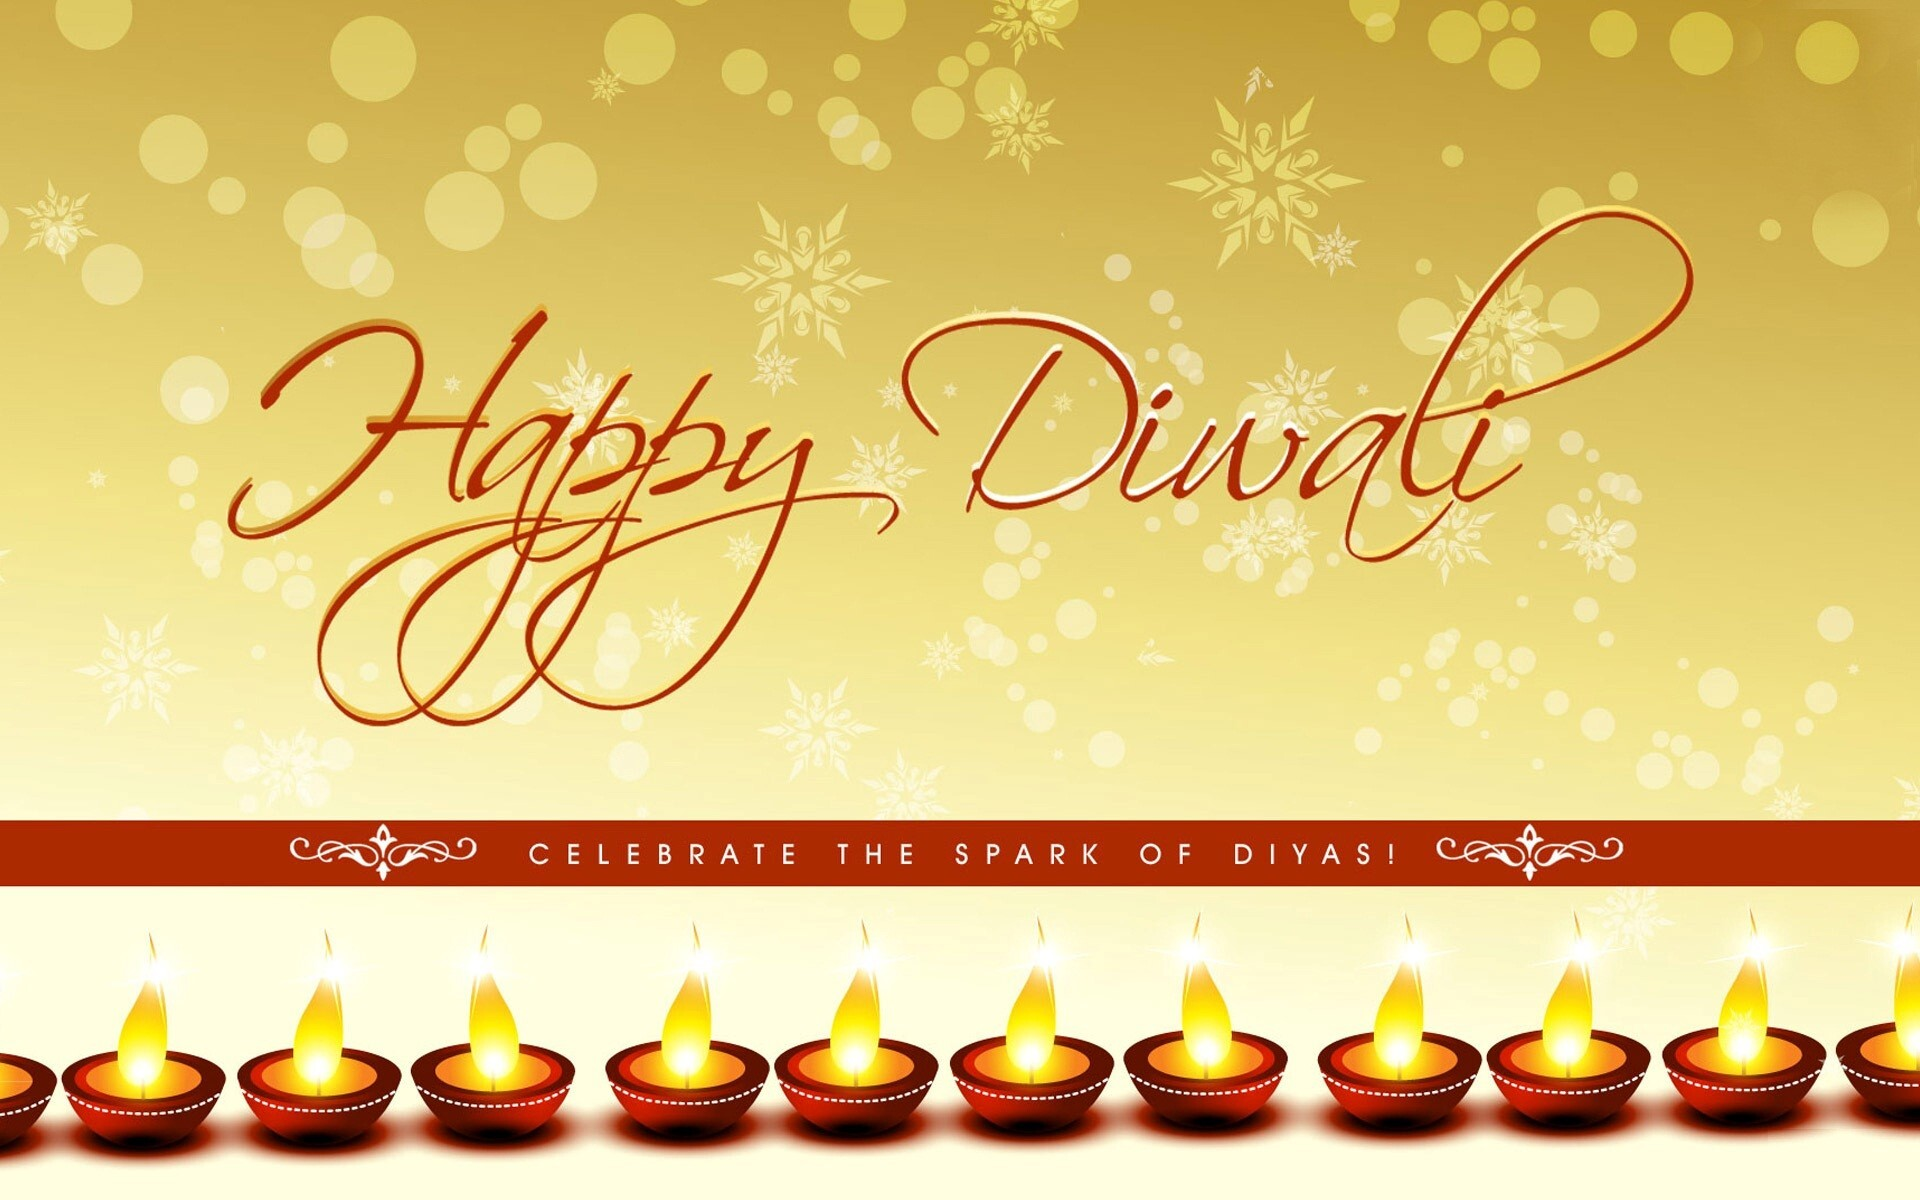 Happy Diwali Celebration Greetings Card Wallpapers Hd Wallpapers